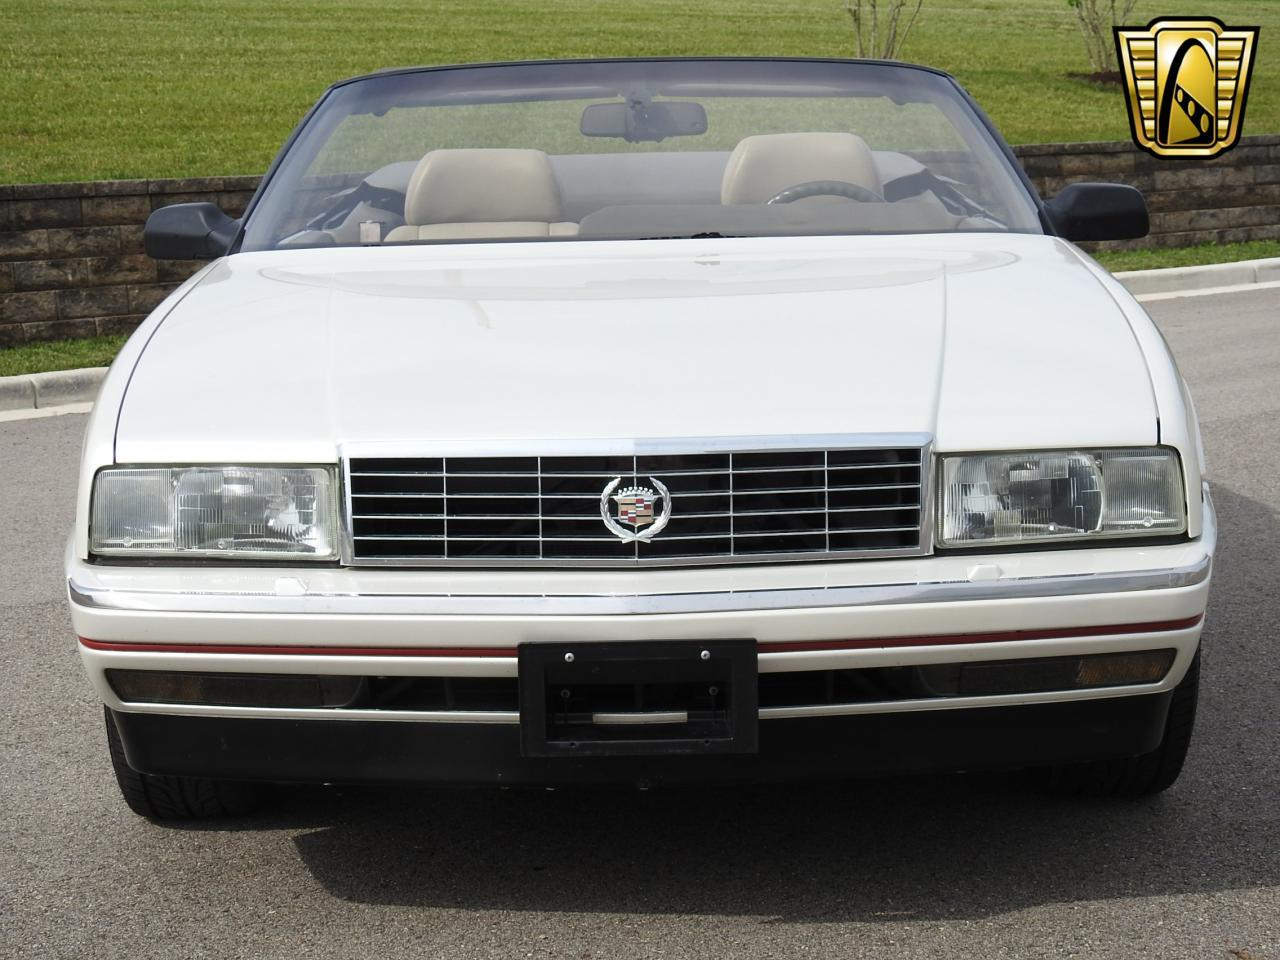 Large Picture of 1993 Cadillac Allante located in Kenosha Wisconsin Offered by Gateway Classic Cars - Milwaukee - LF3Y